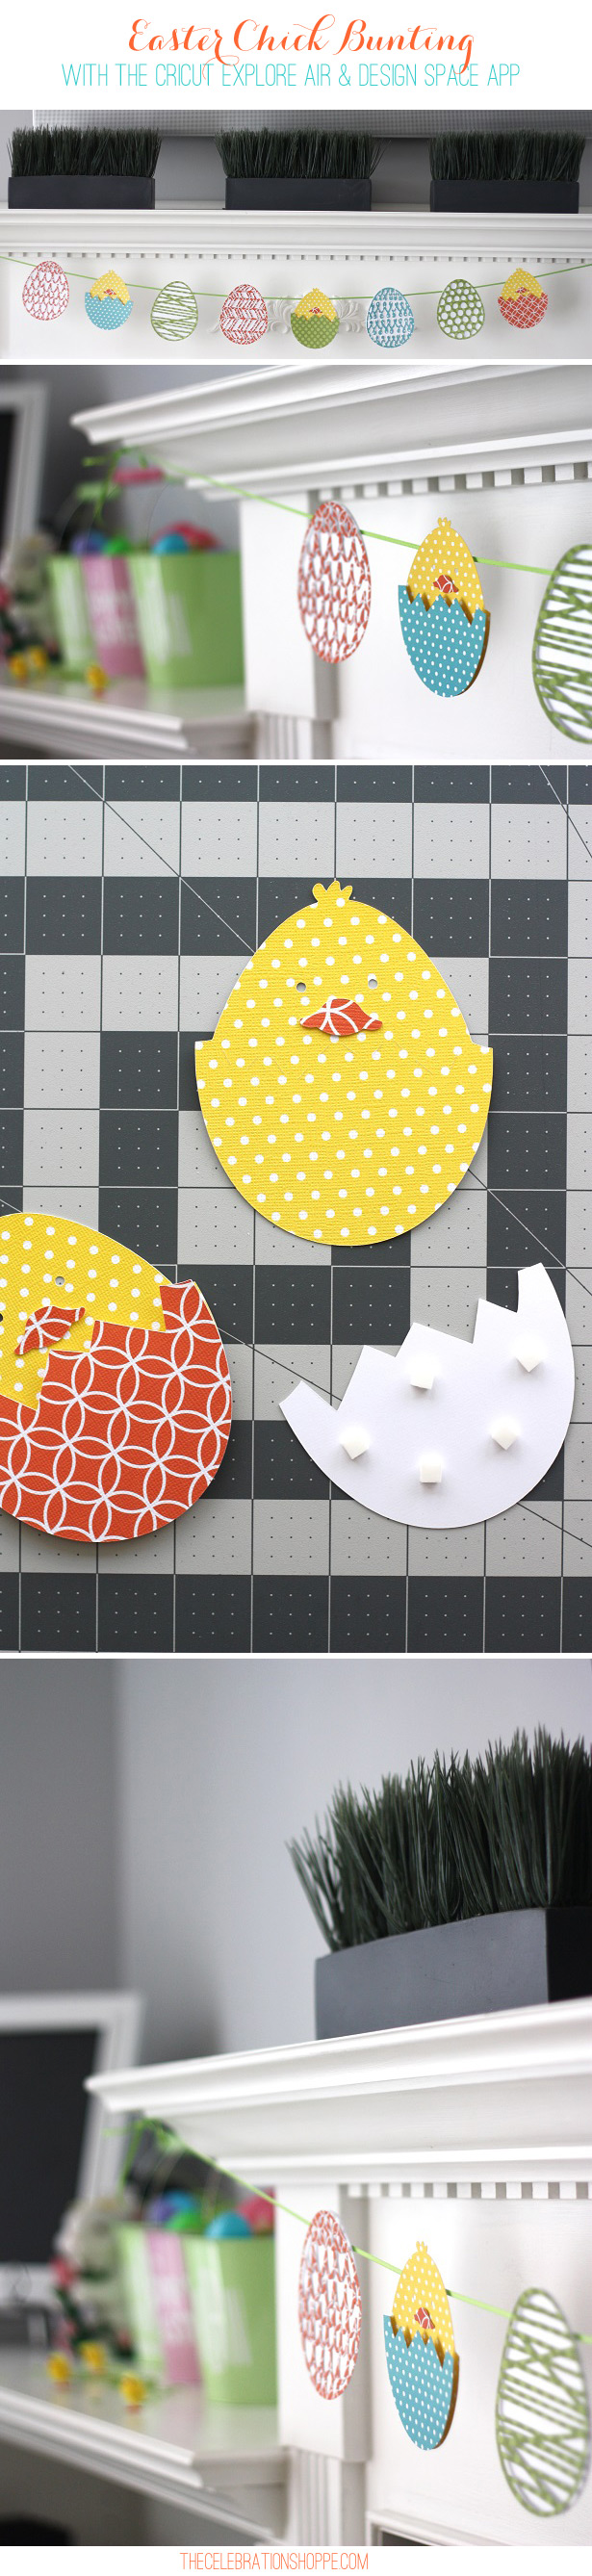 Easter Chick Bunting with Cricut Explore and Design Space App